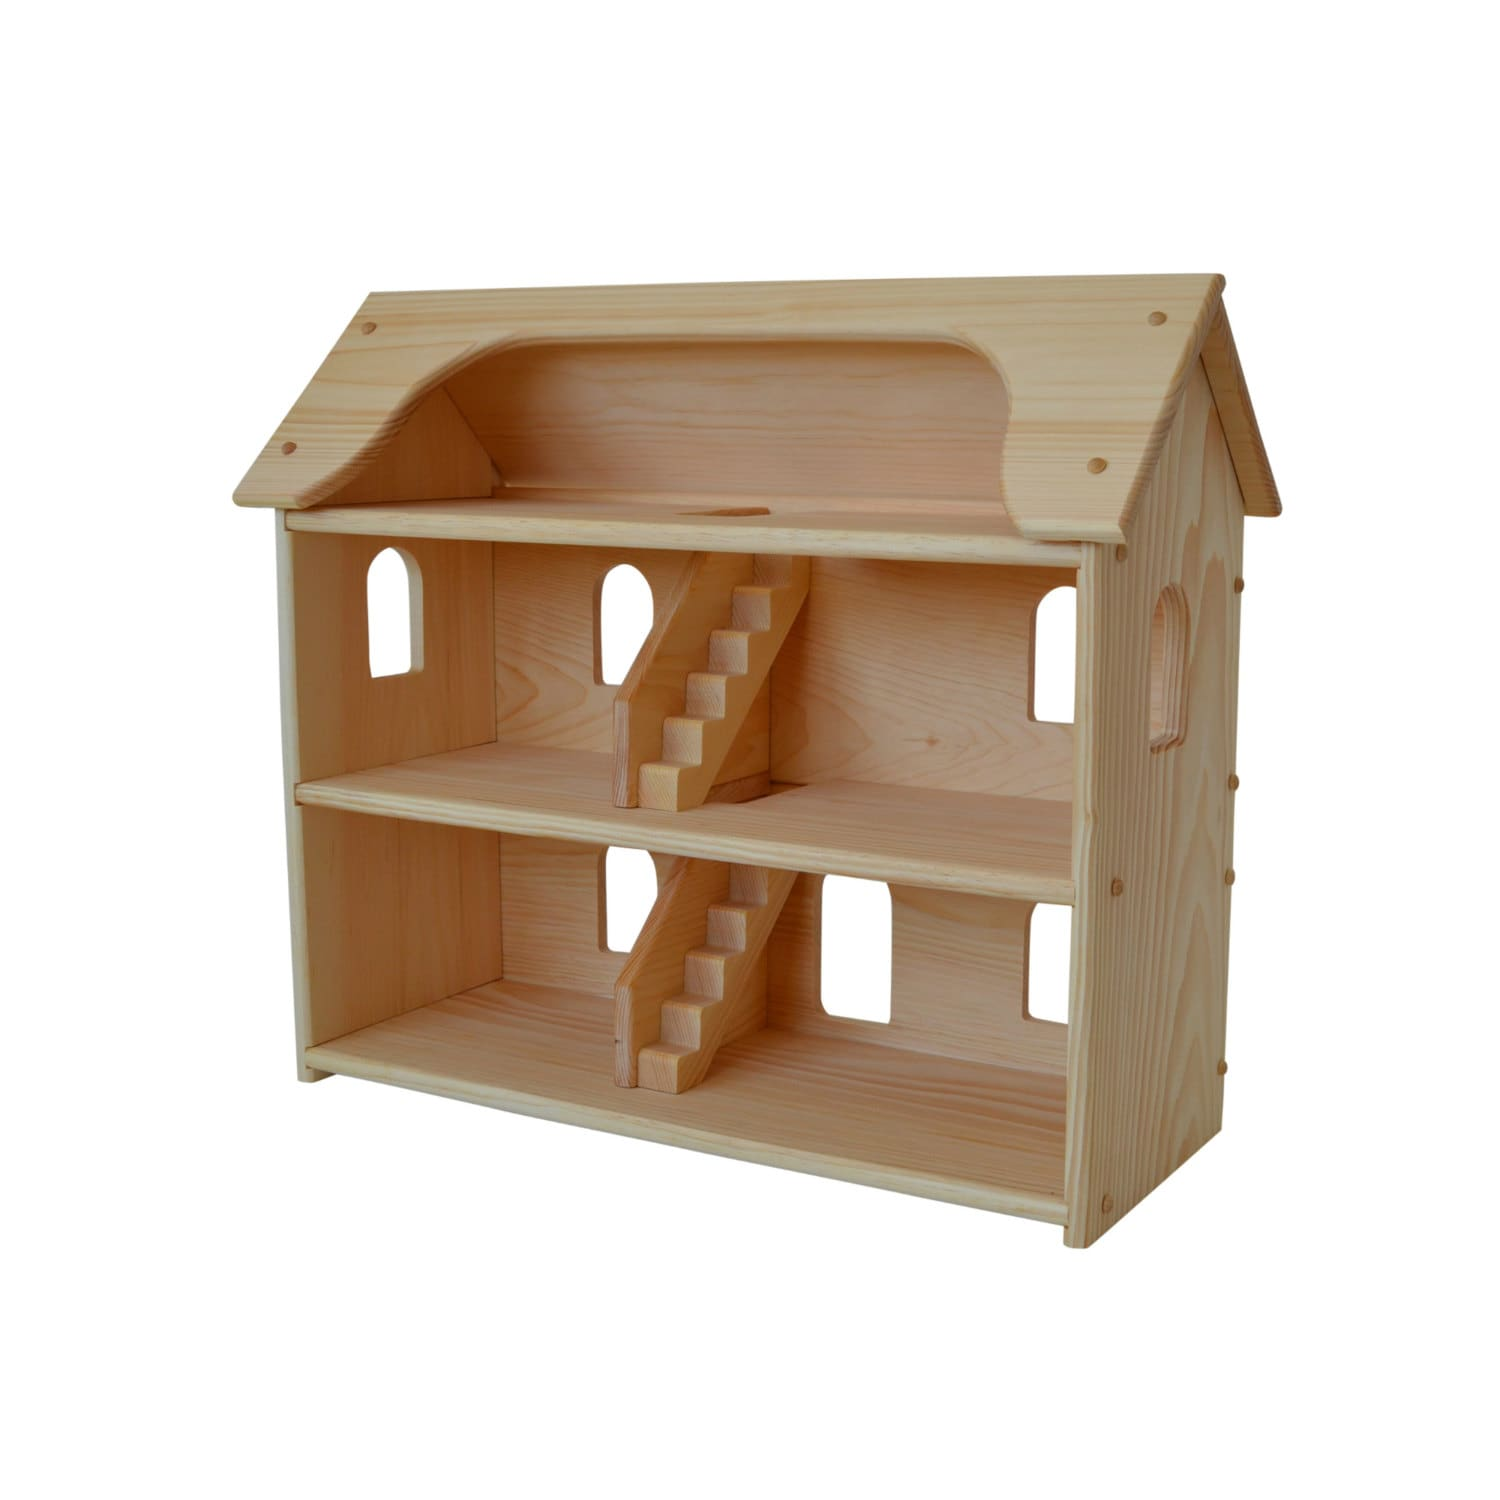 Handcrafted Natural Wooden Toy Dollhouse Waldorf